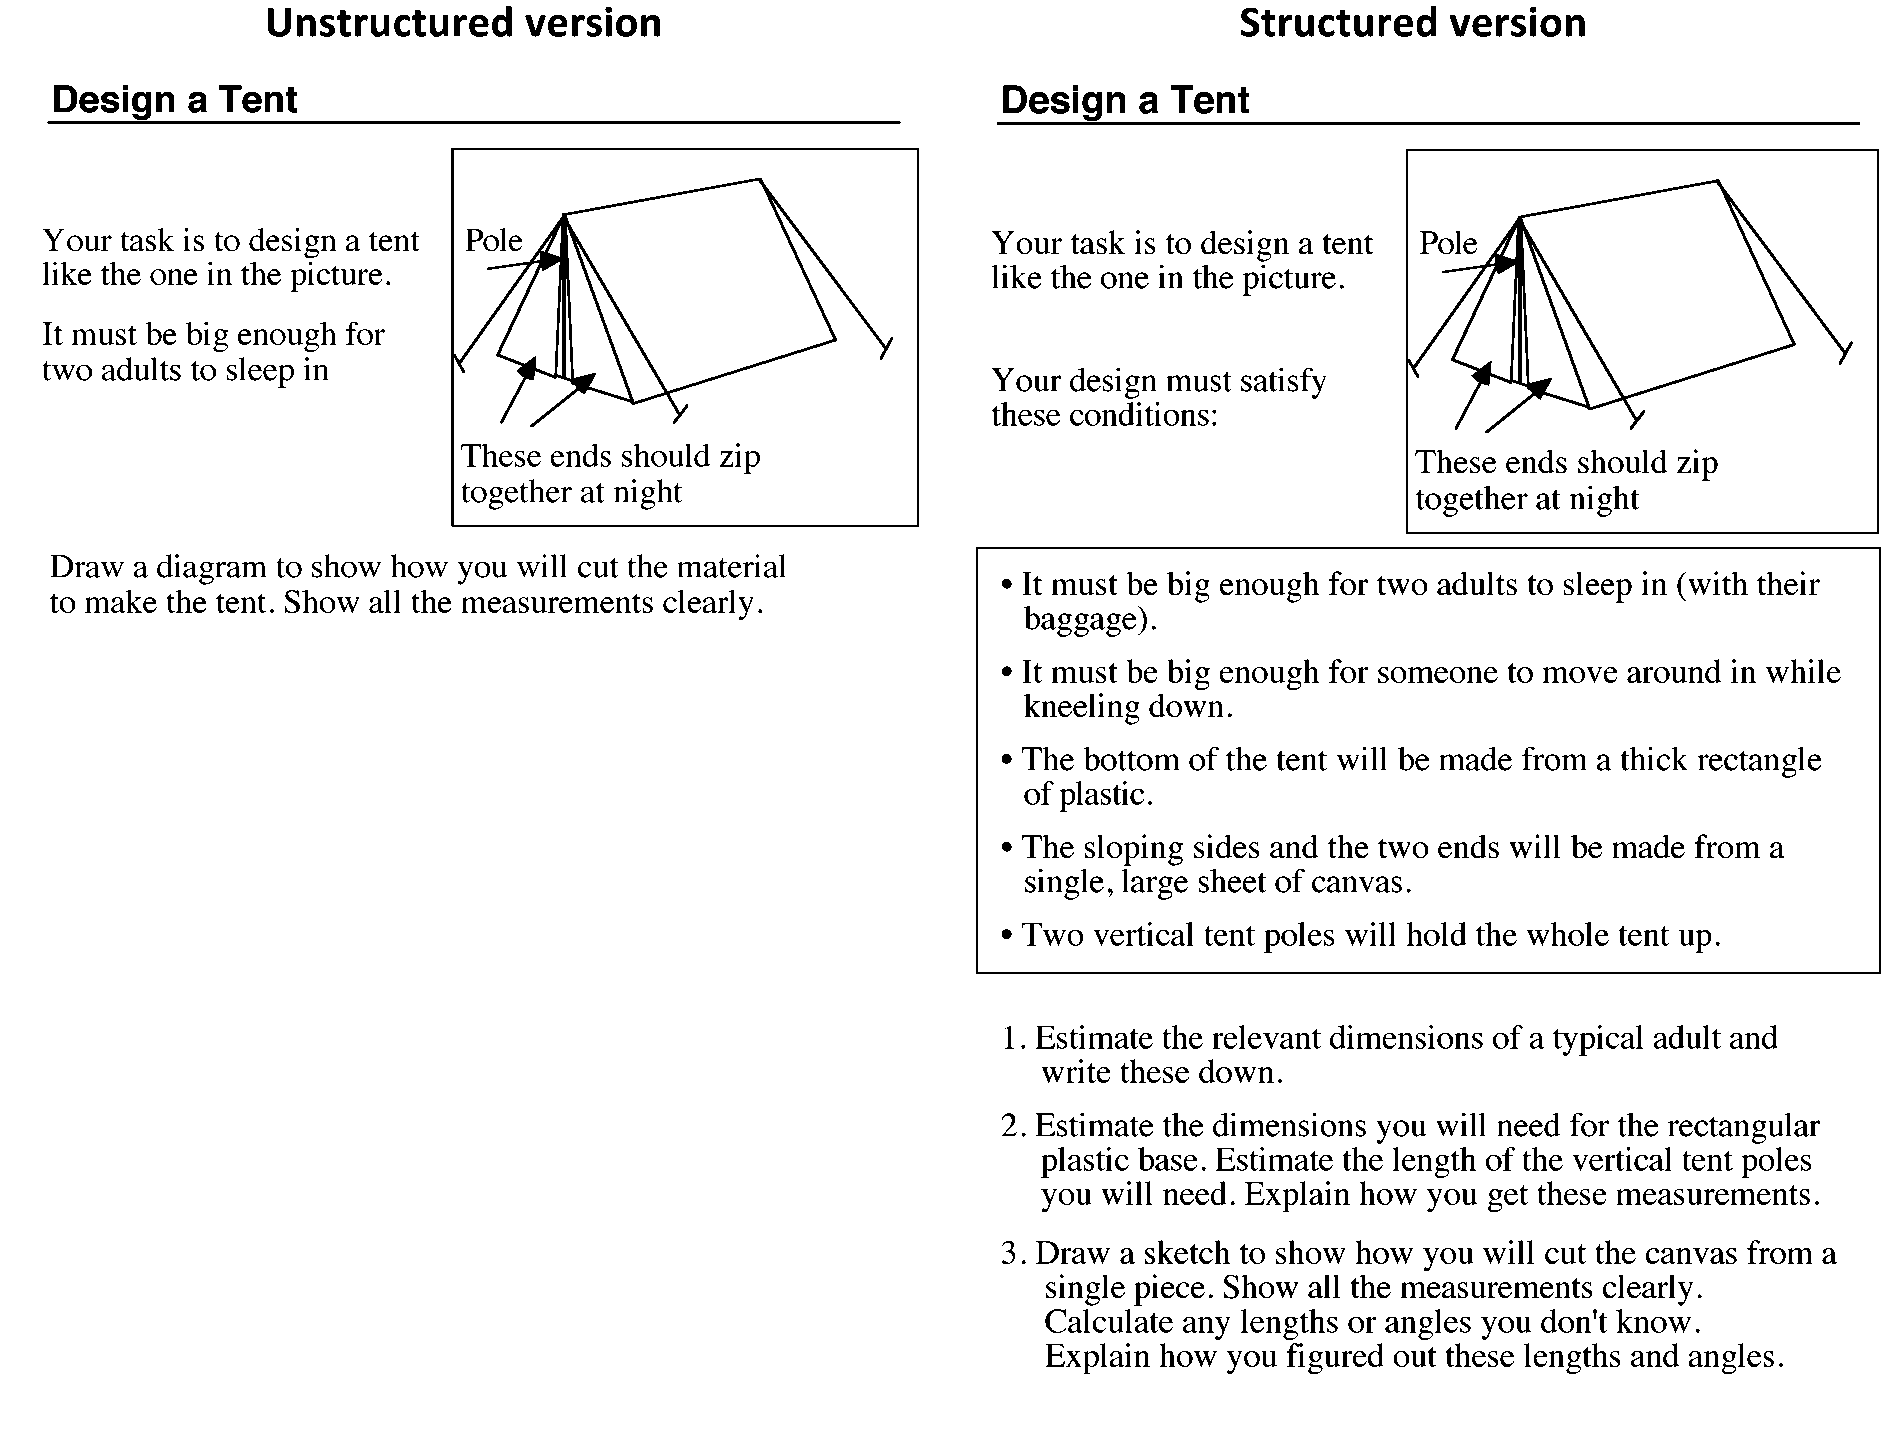 a designer speaks figure 6 unstructured and structured versions of the tent task